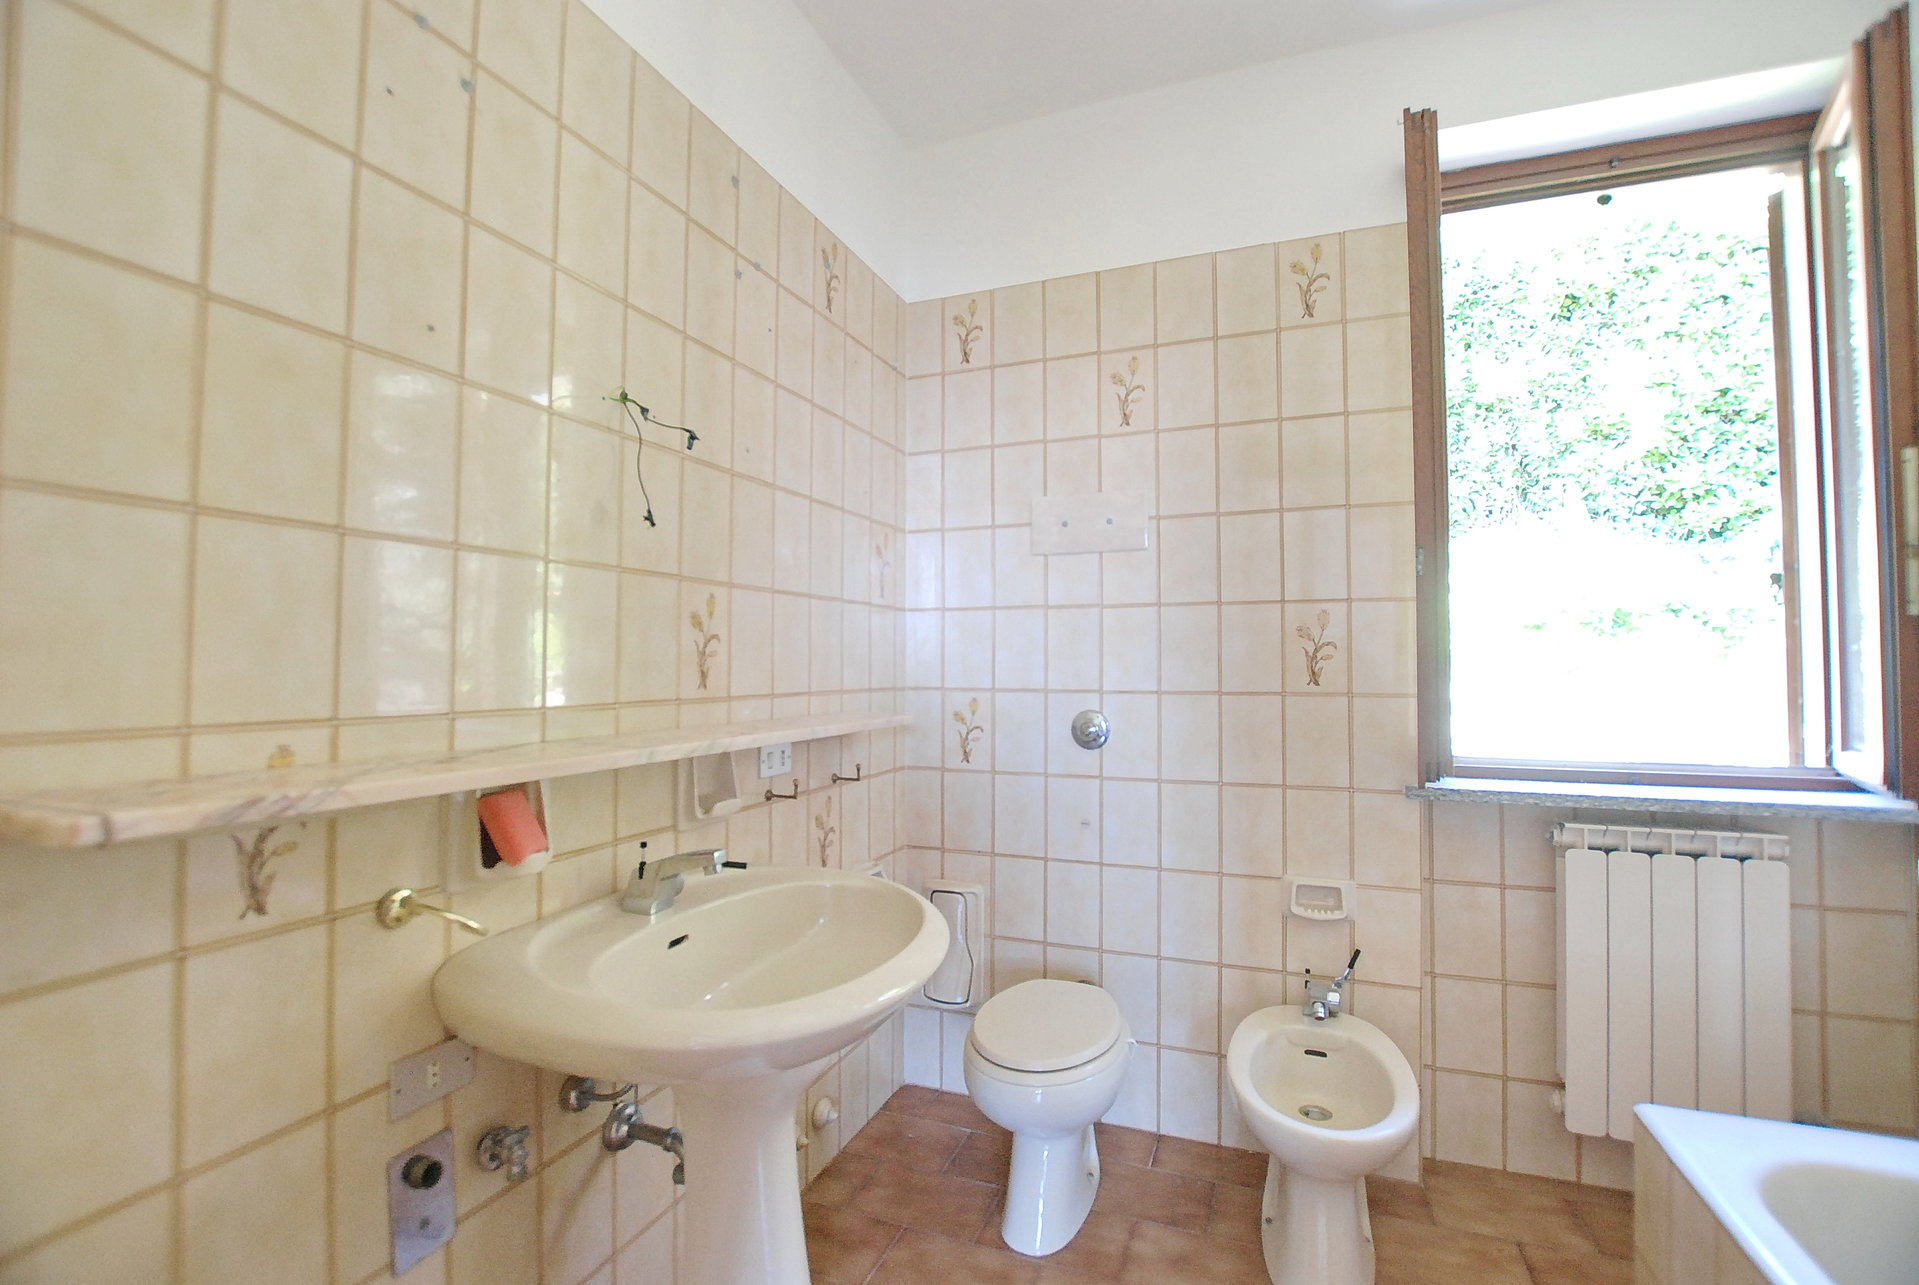 House for sale in Belgirate